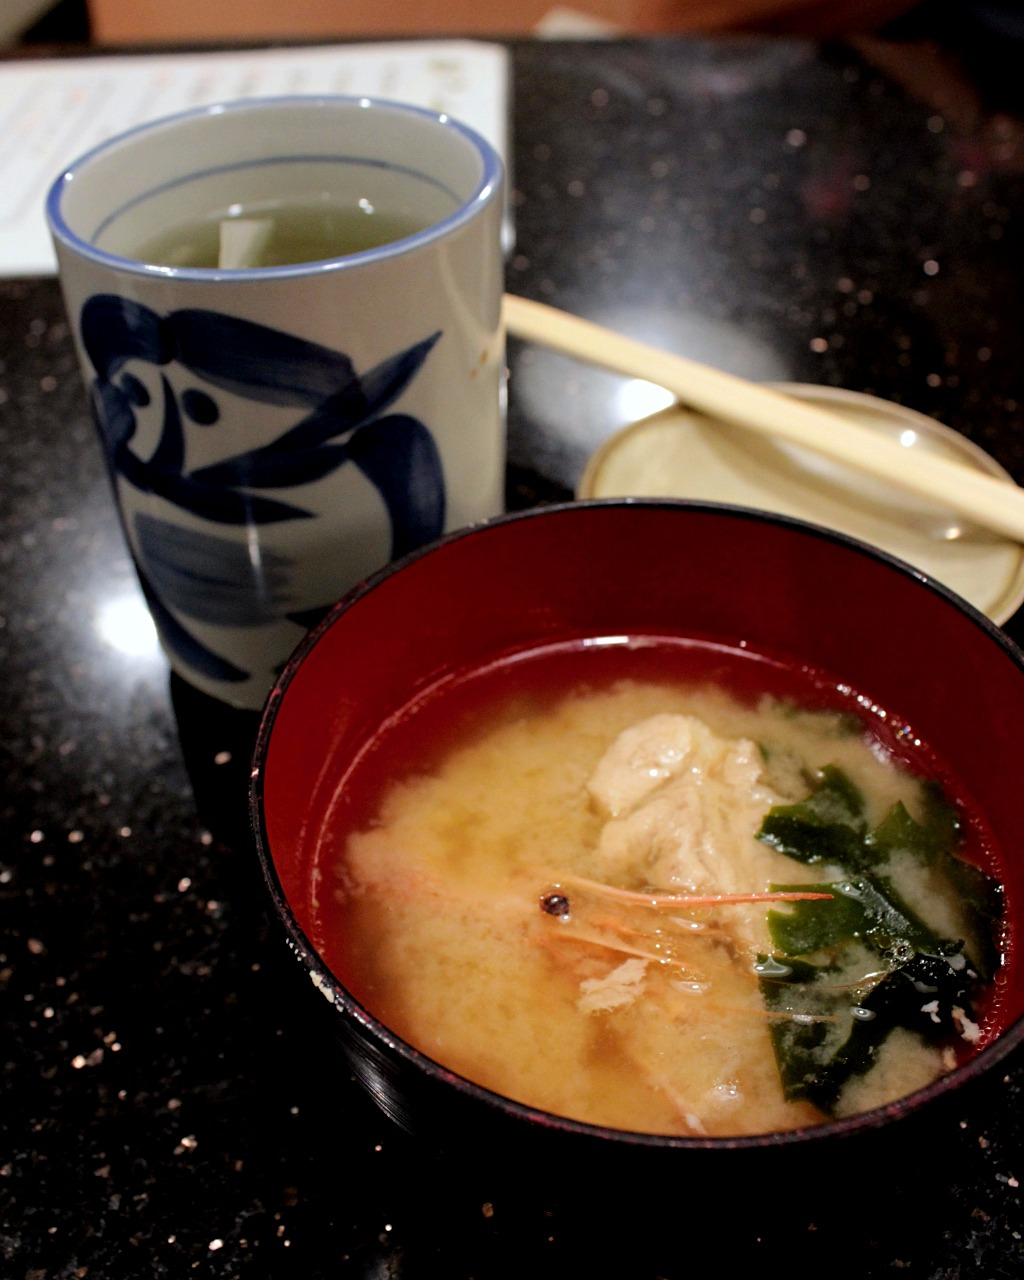 Seafood miso soup at Ponta in Kanazawa, Japan